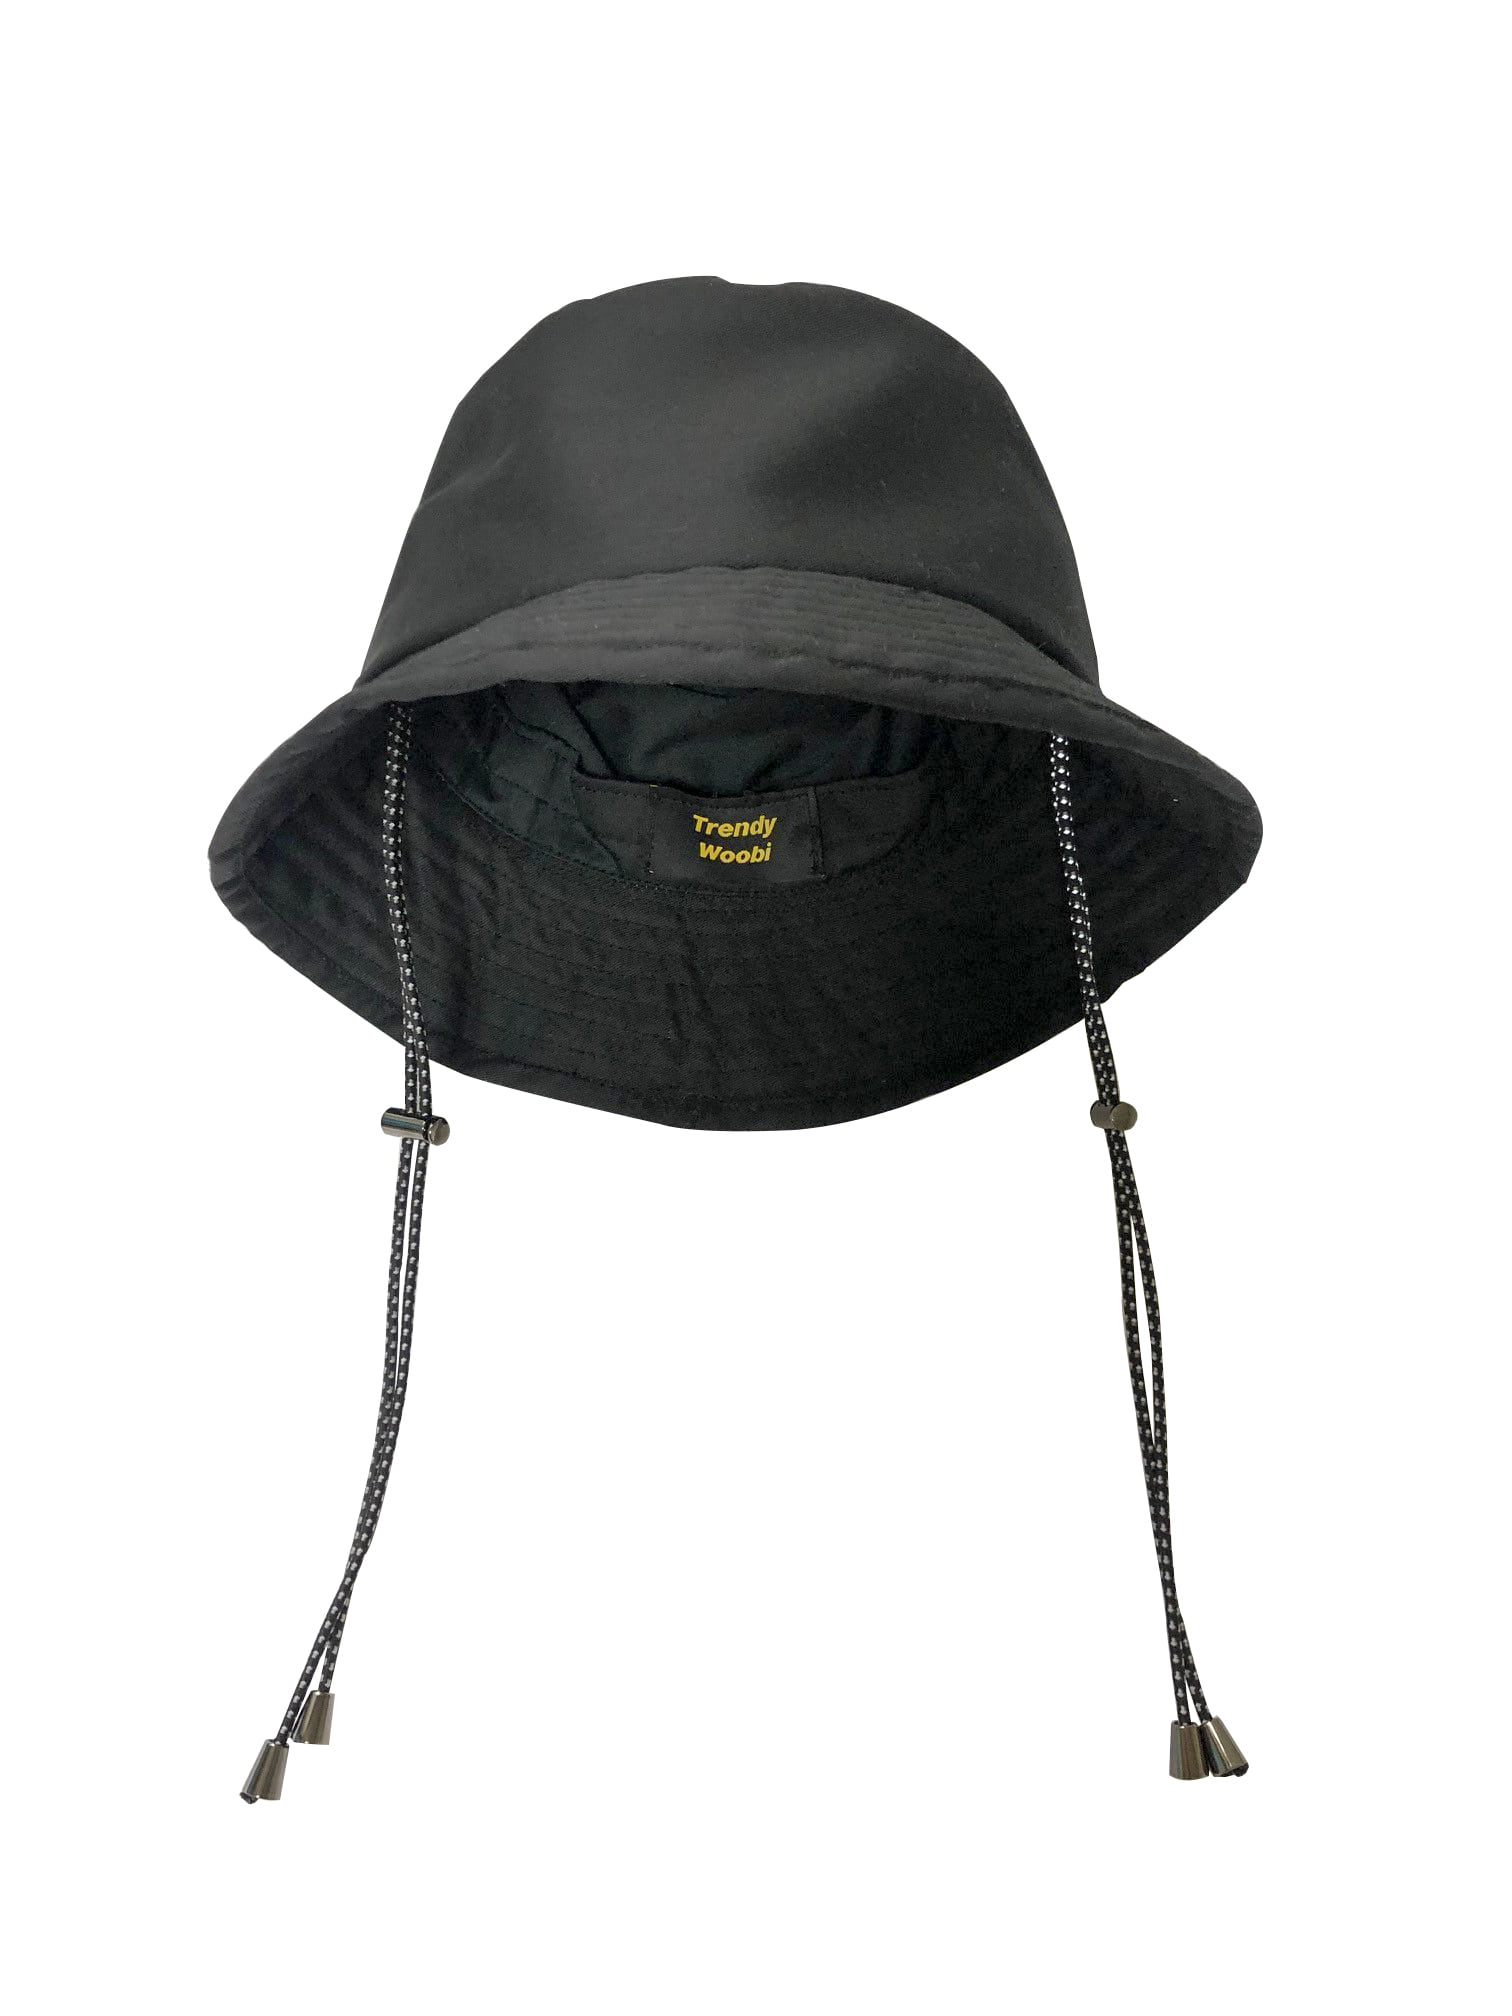 Scotch rope buckethat(black)